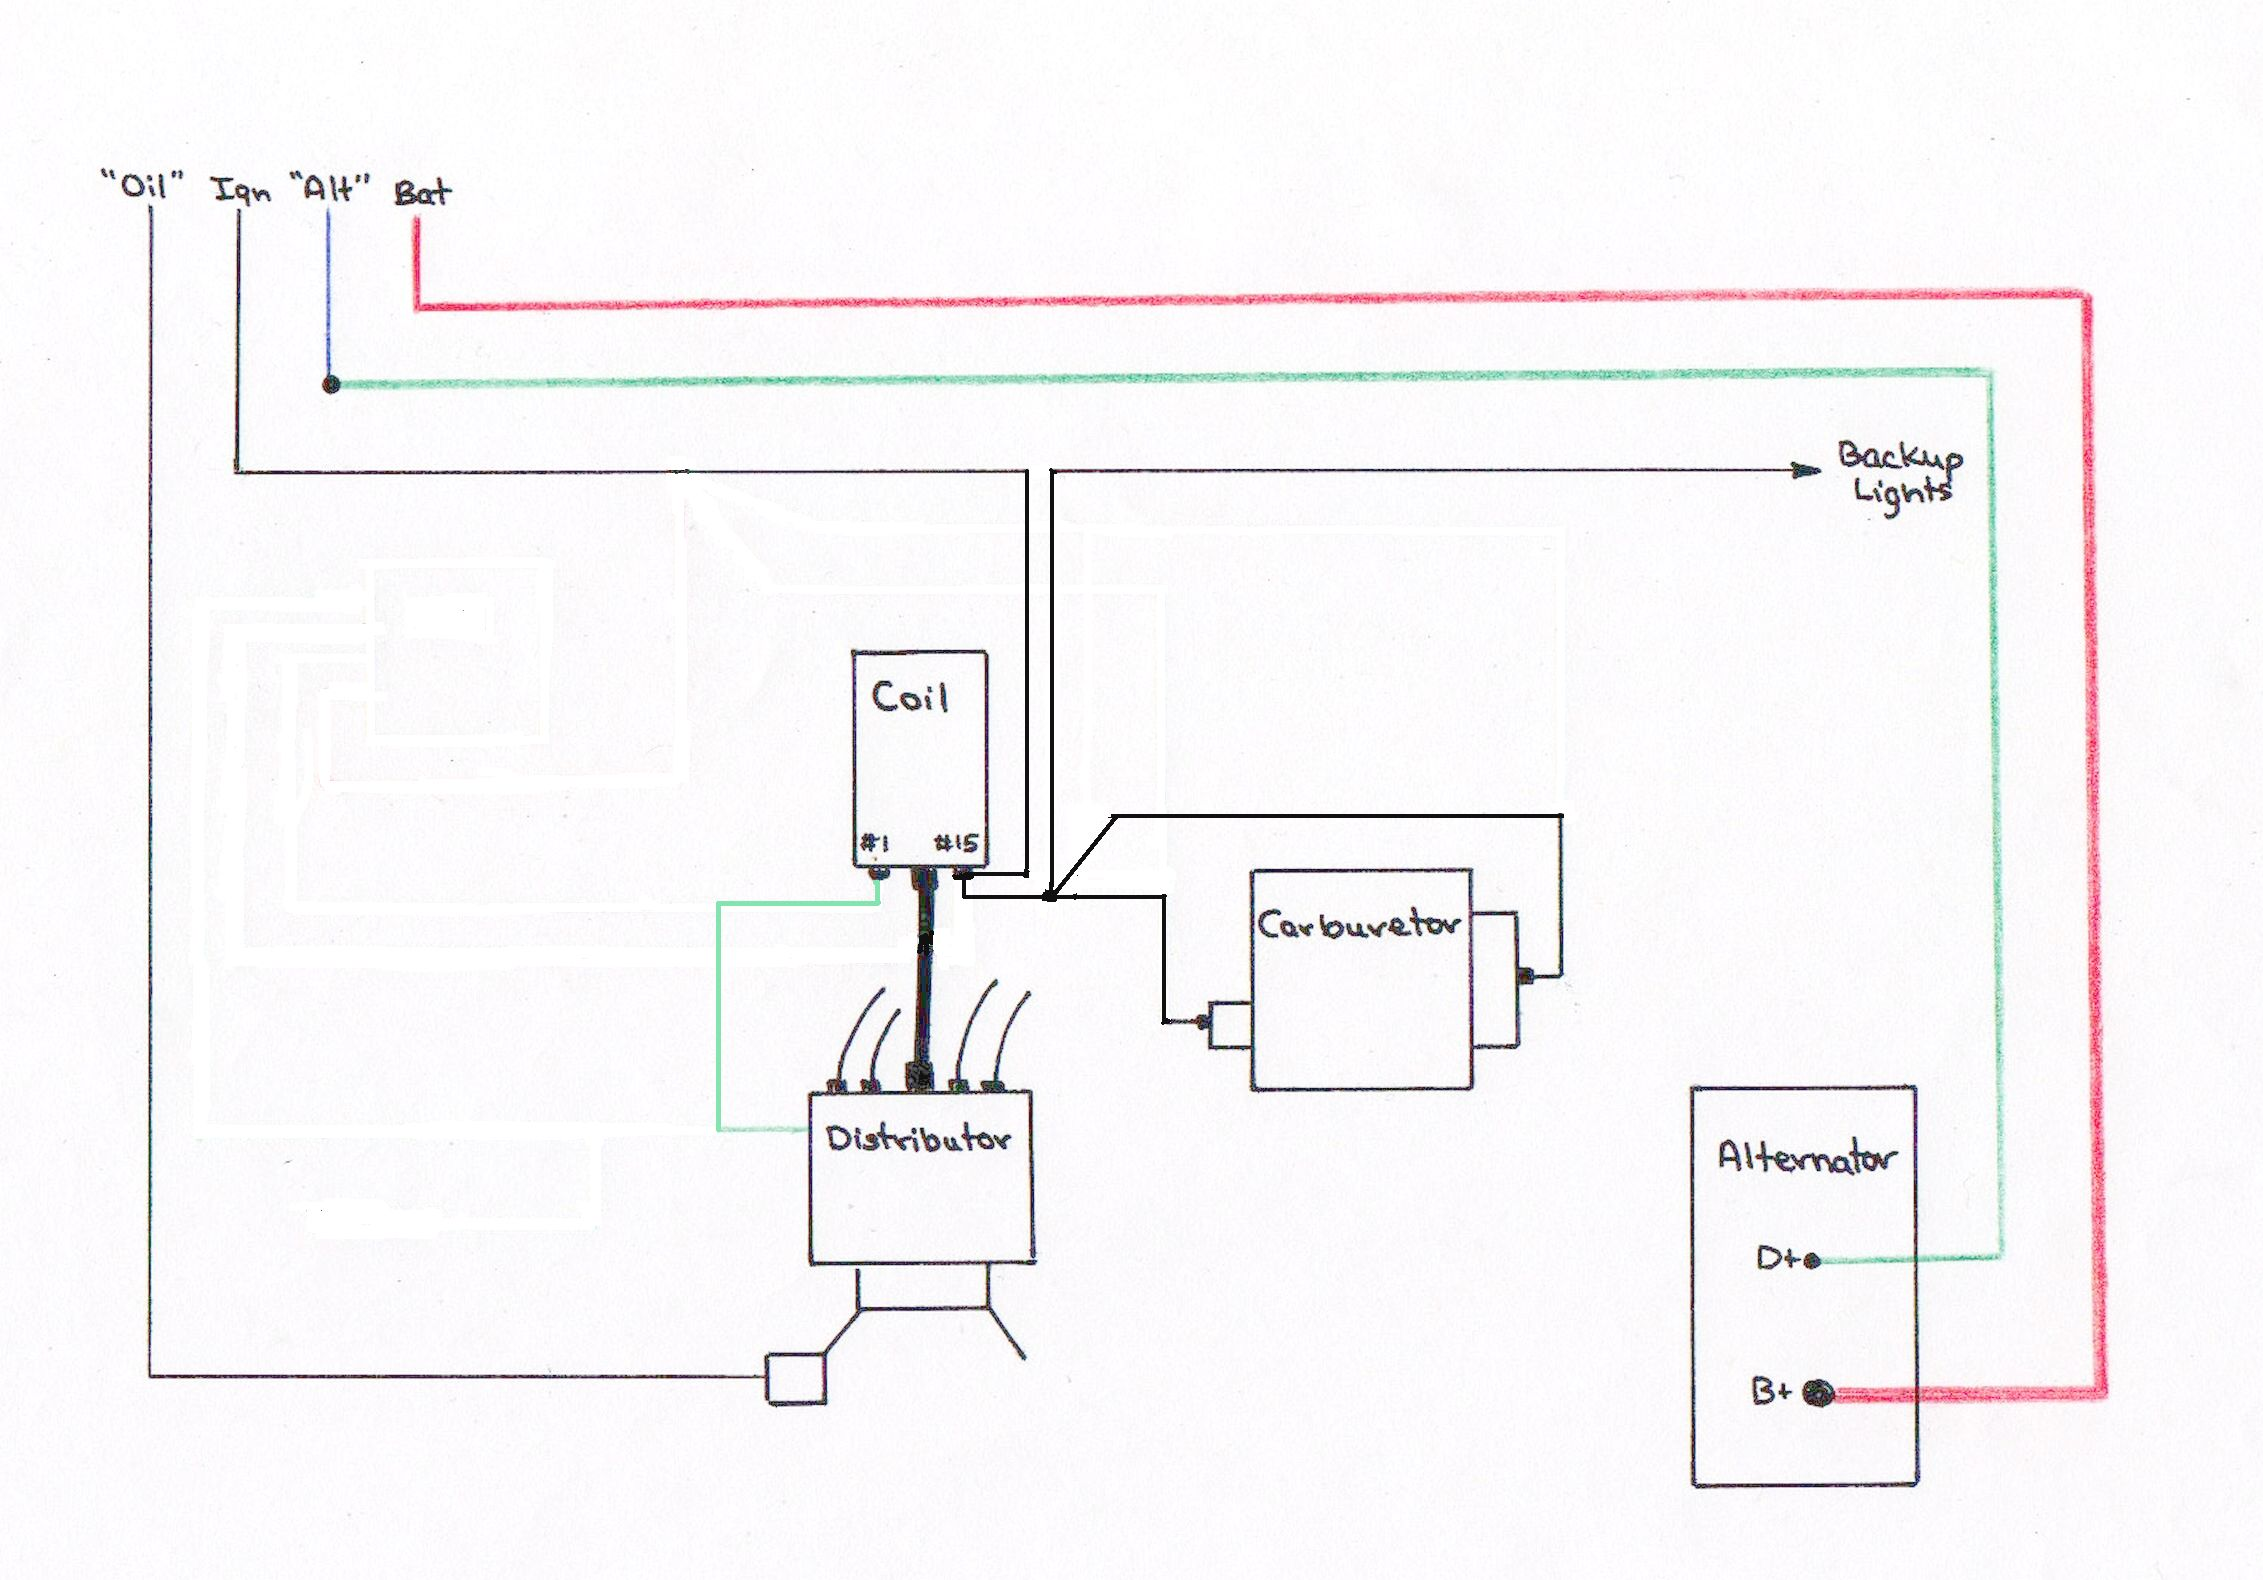 handdrawn_schematic alternator wiring 1973 vw wiring diagram at nearapp.co